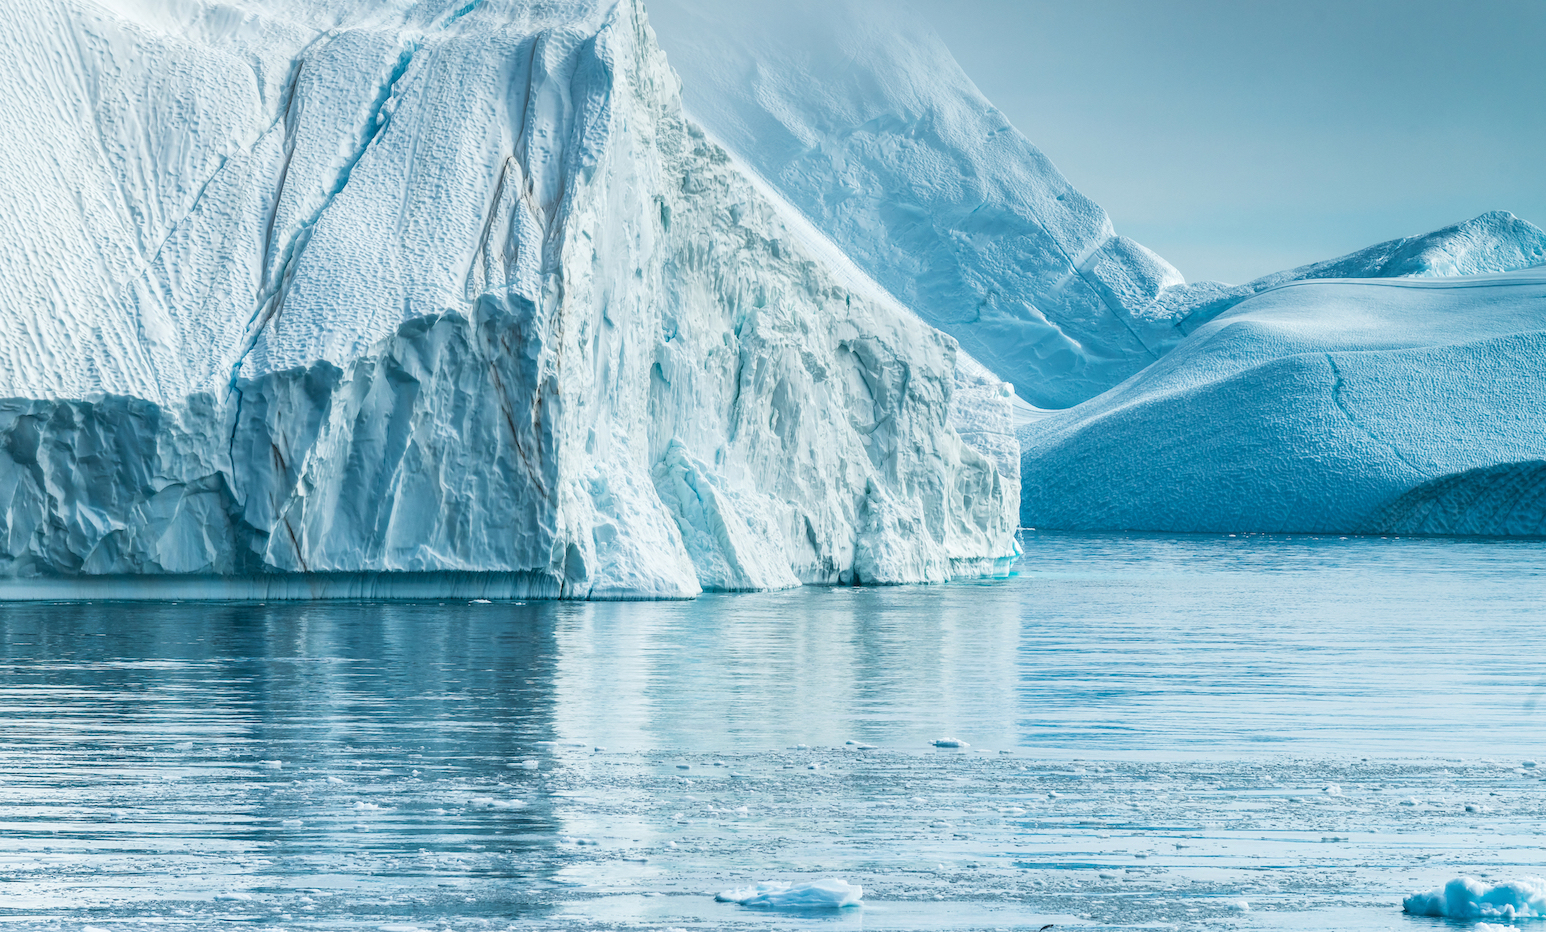 This week, WMO scientists announced that Antarctica has officially reached a new record high temperature of 63.5 degrees.